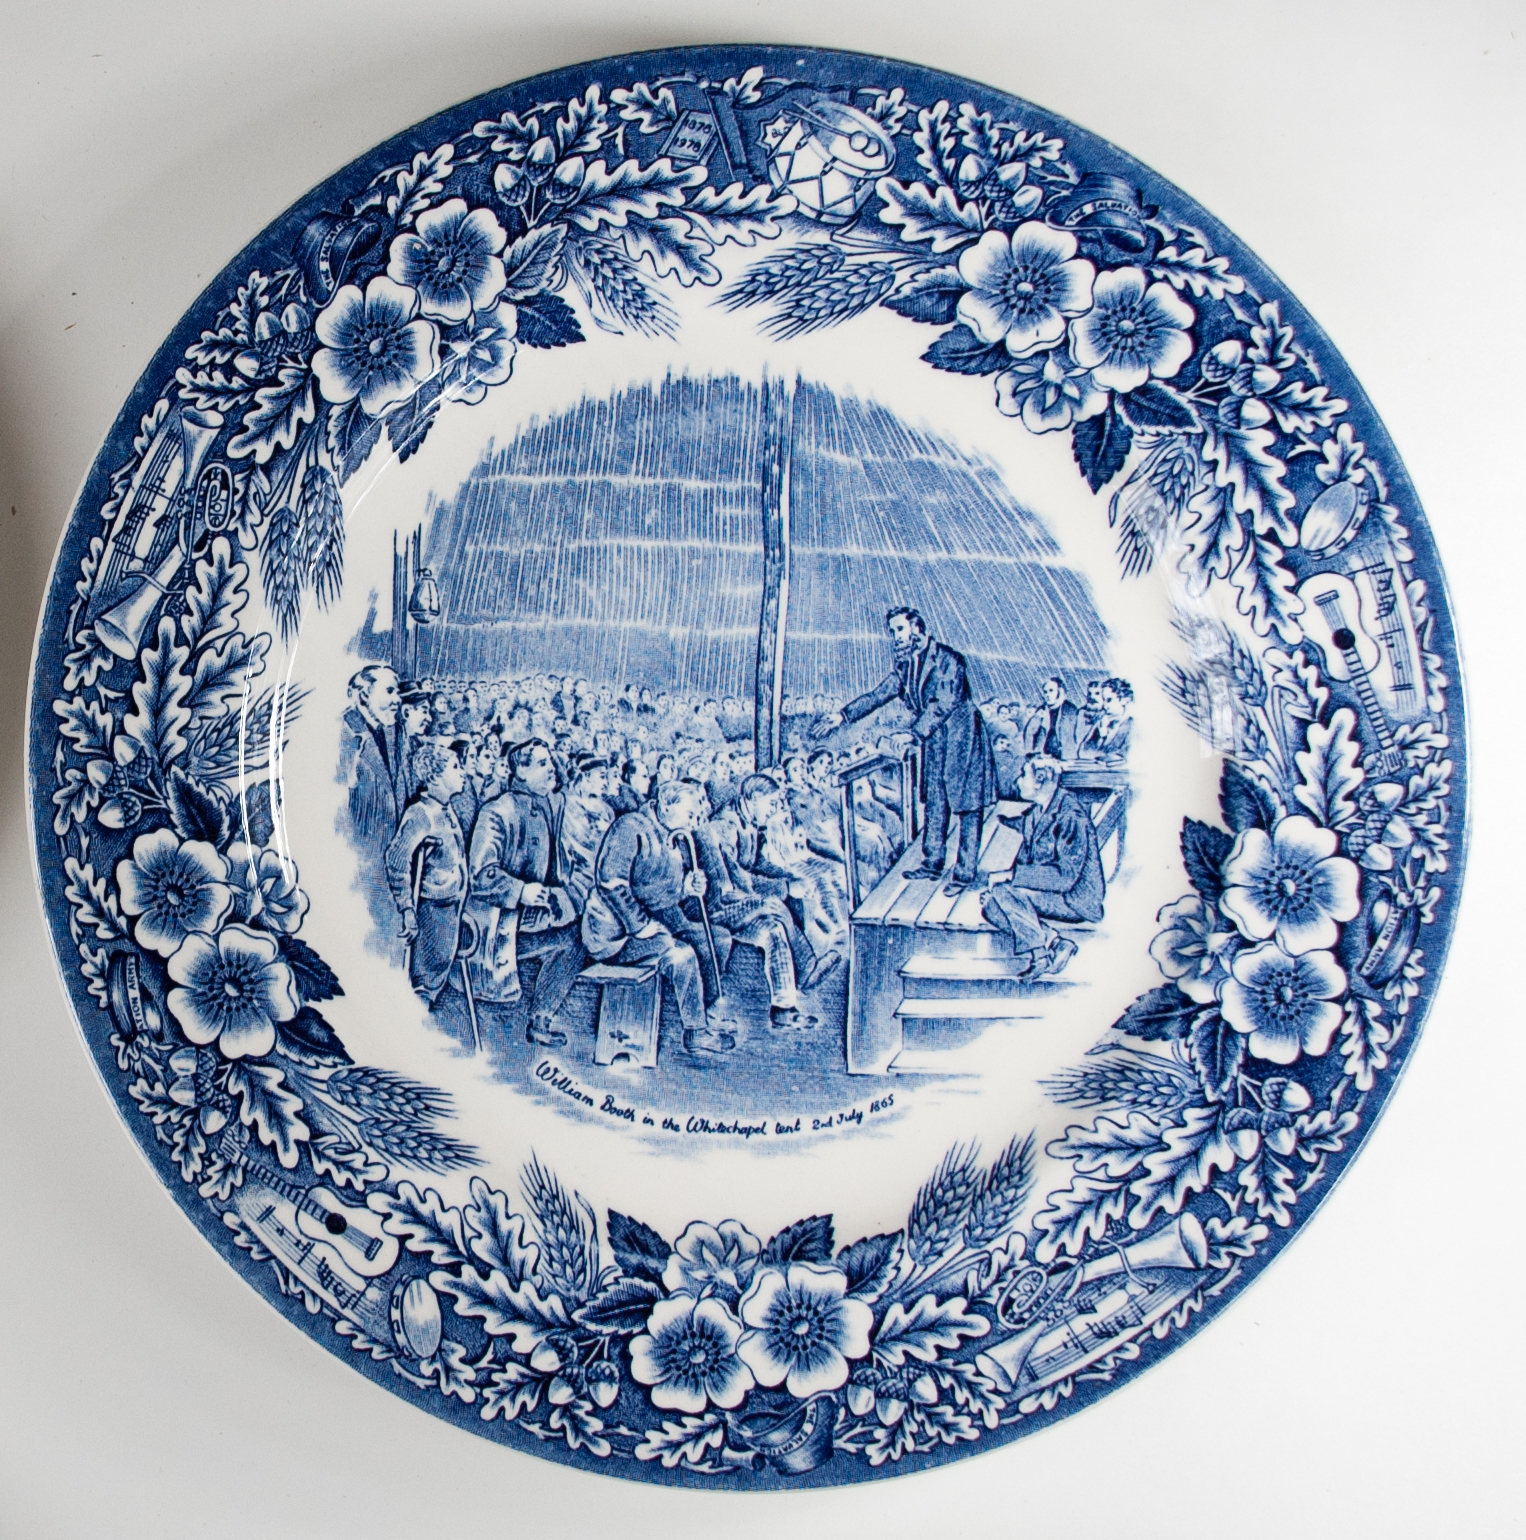 Blue and white china plate of 1978 congress edition.